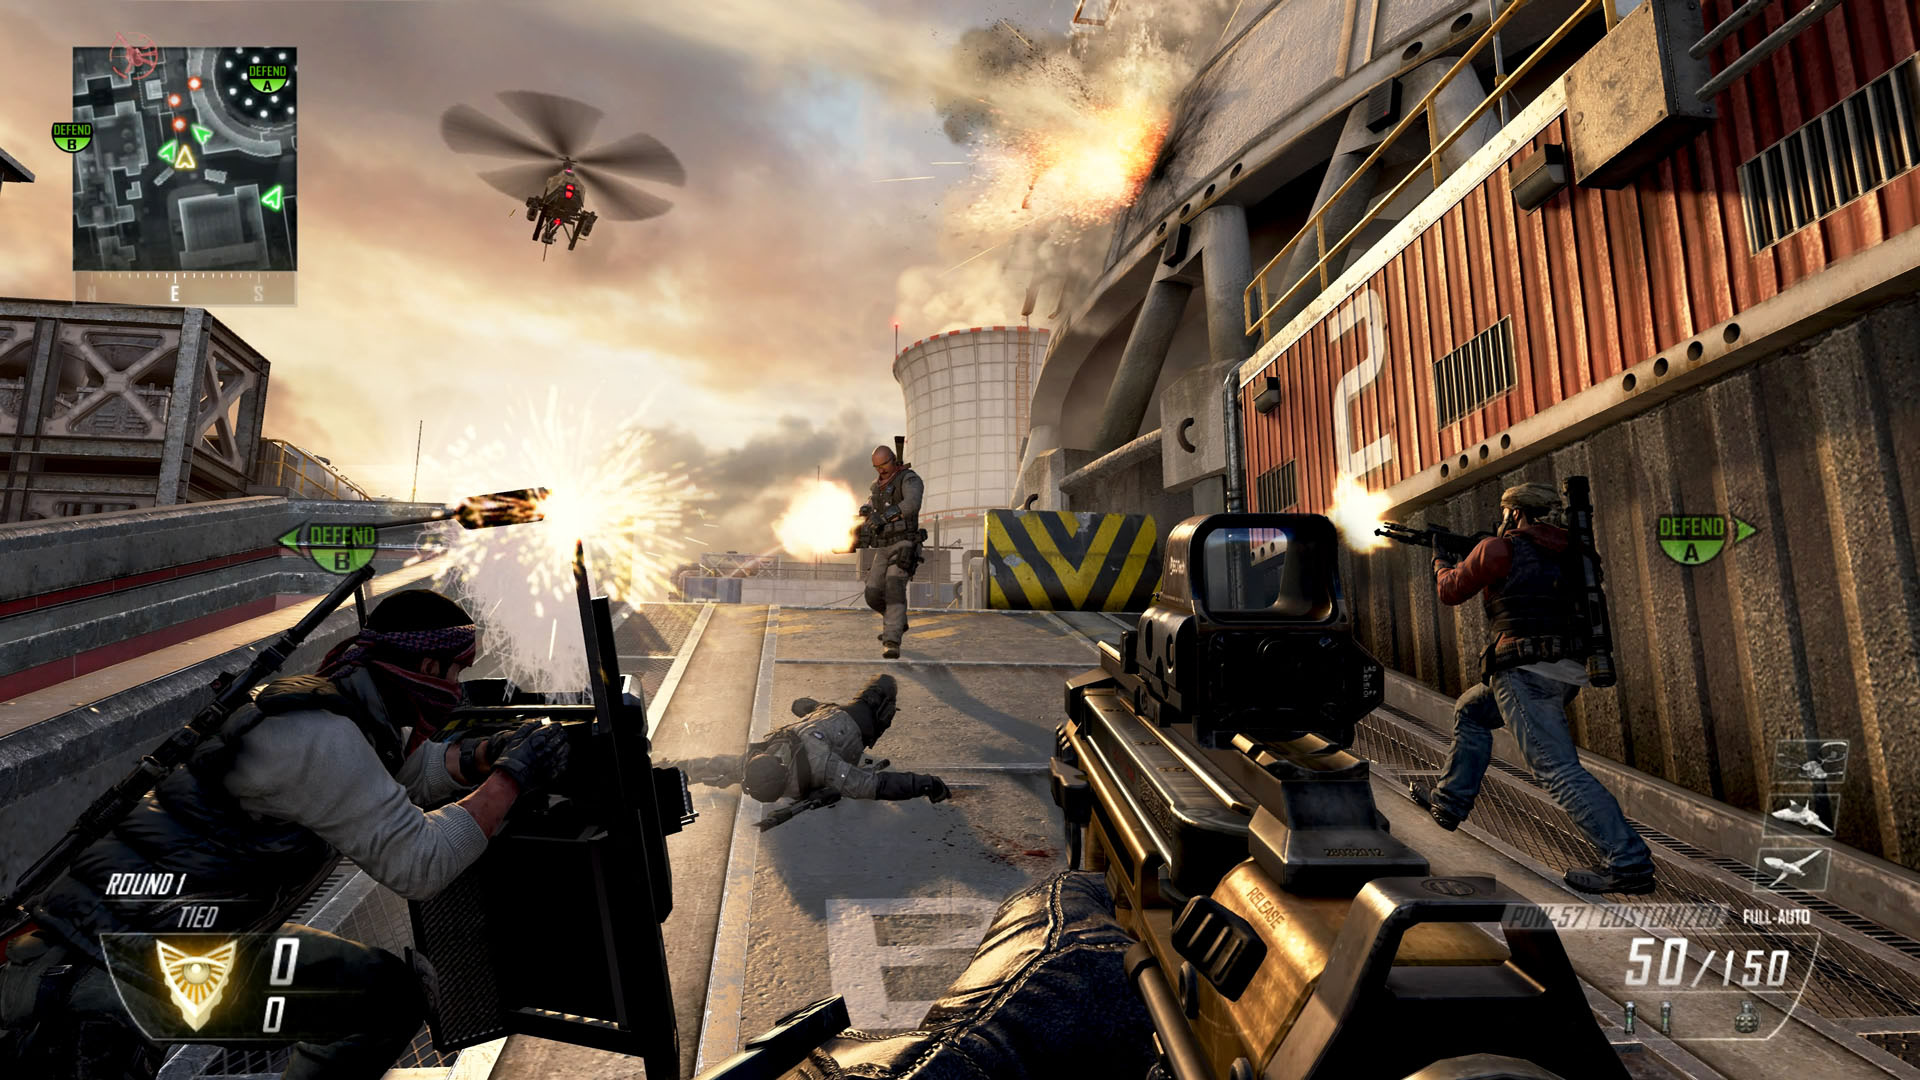 5 Things I Want to See in the Next Call of Duty